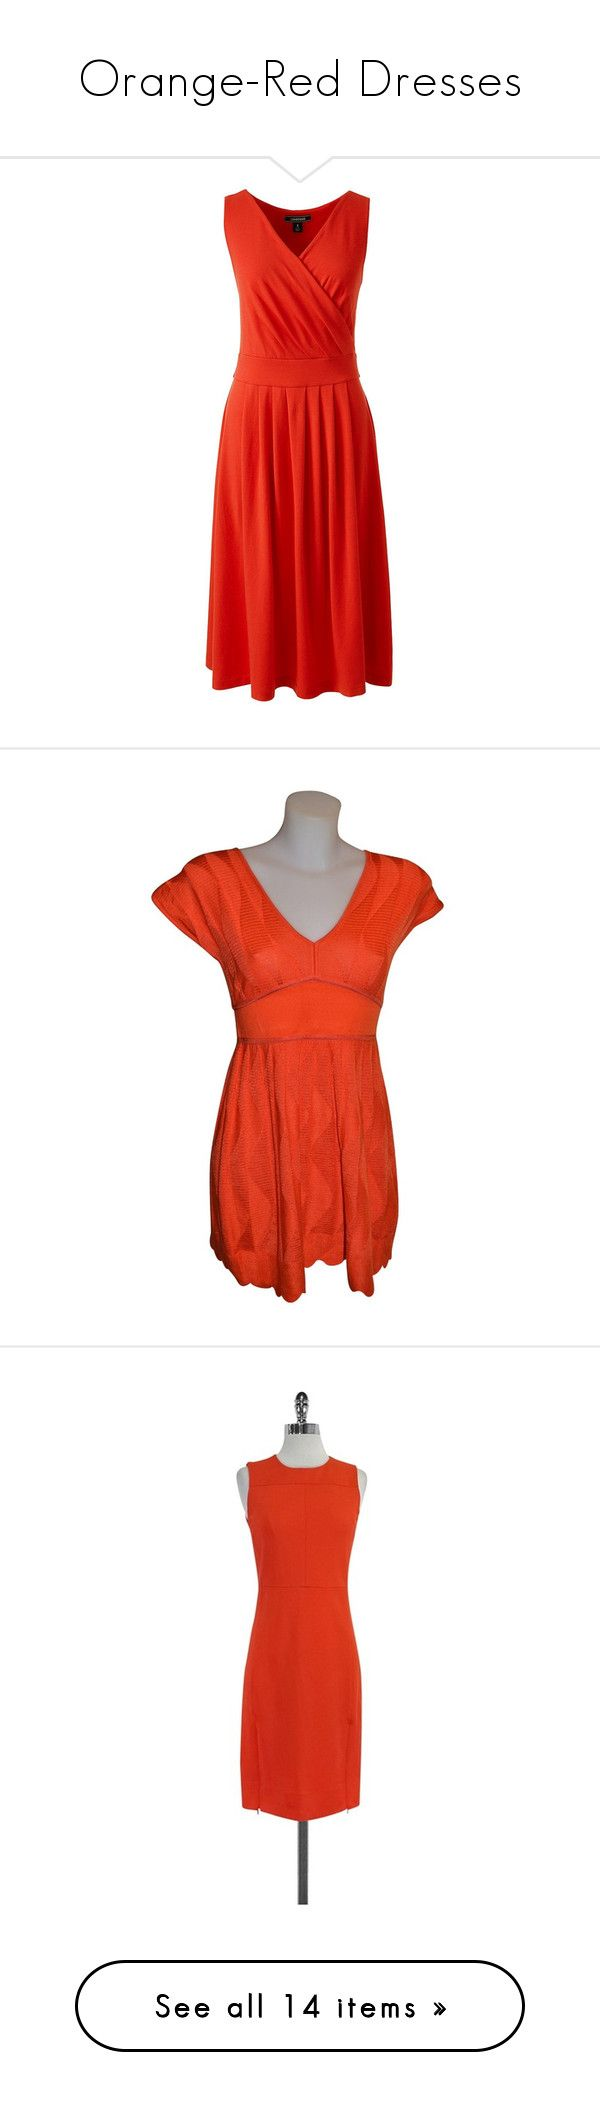 """Orange-Red Dresses"" by tegan-b-riley on Polyvore featuring dresses, orange, orange dresses, lands end dresses, fit flare dress, summer dresses, petite summer dresses, woolen dress, missoni and red dress"